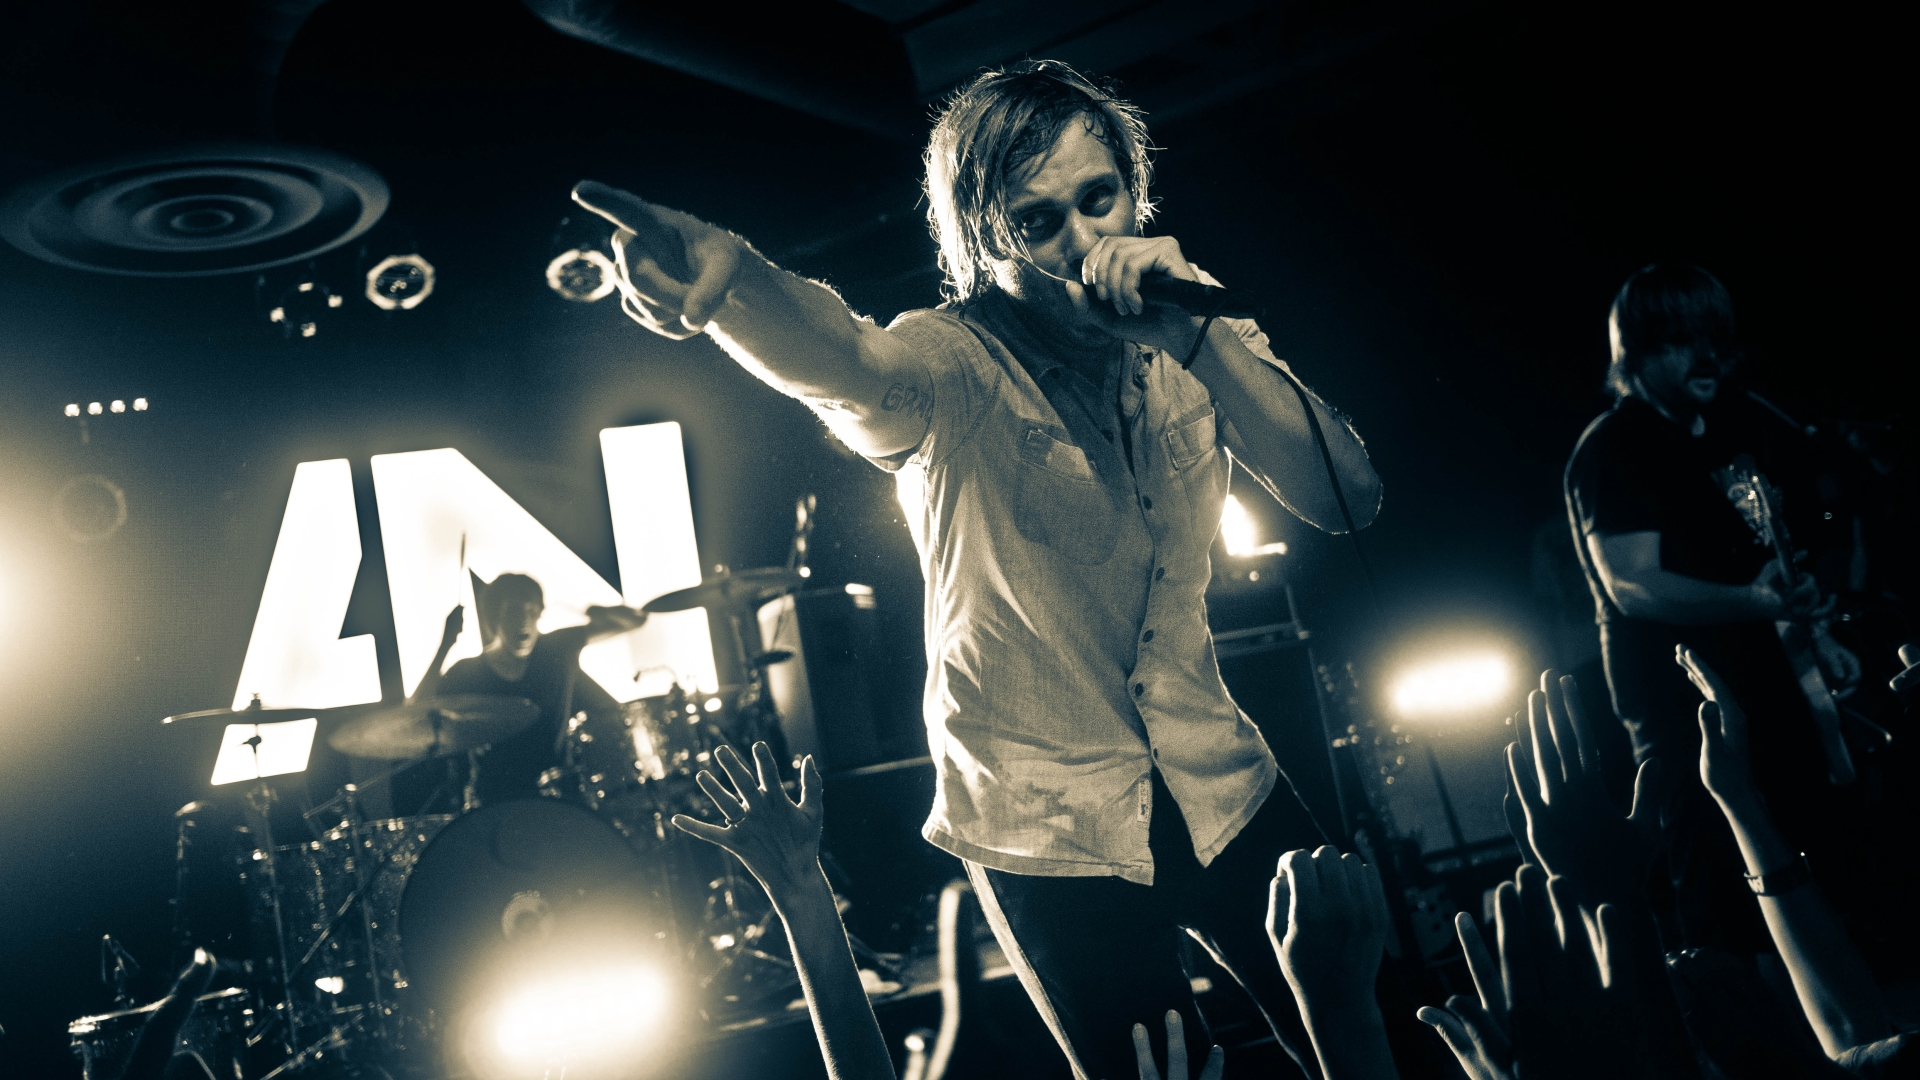 Awolnation & Andrew McMahon [CANCELLED] at Paramount Theatre Seattle